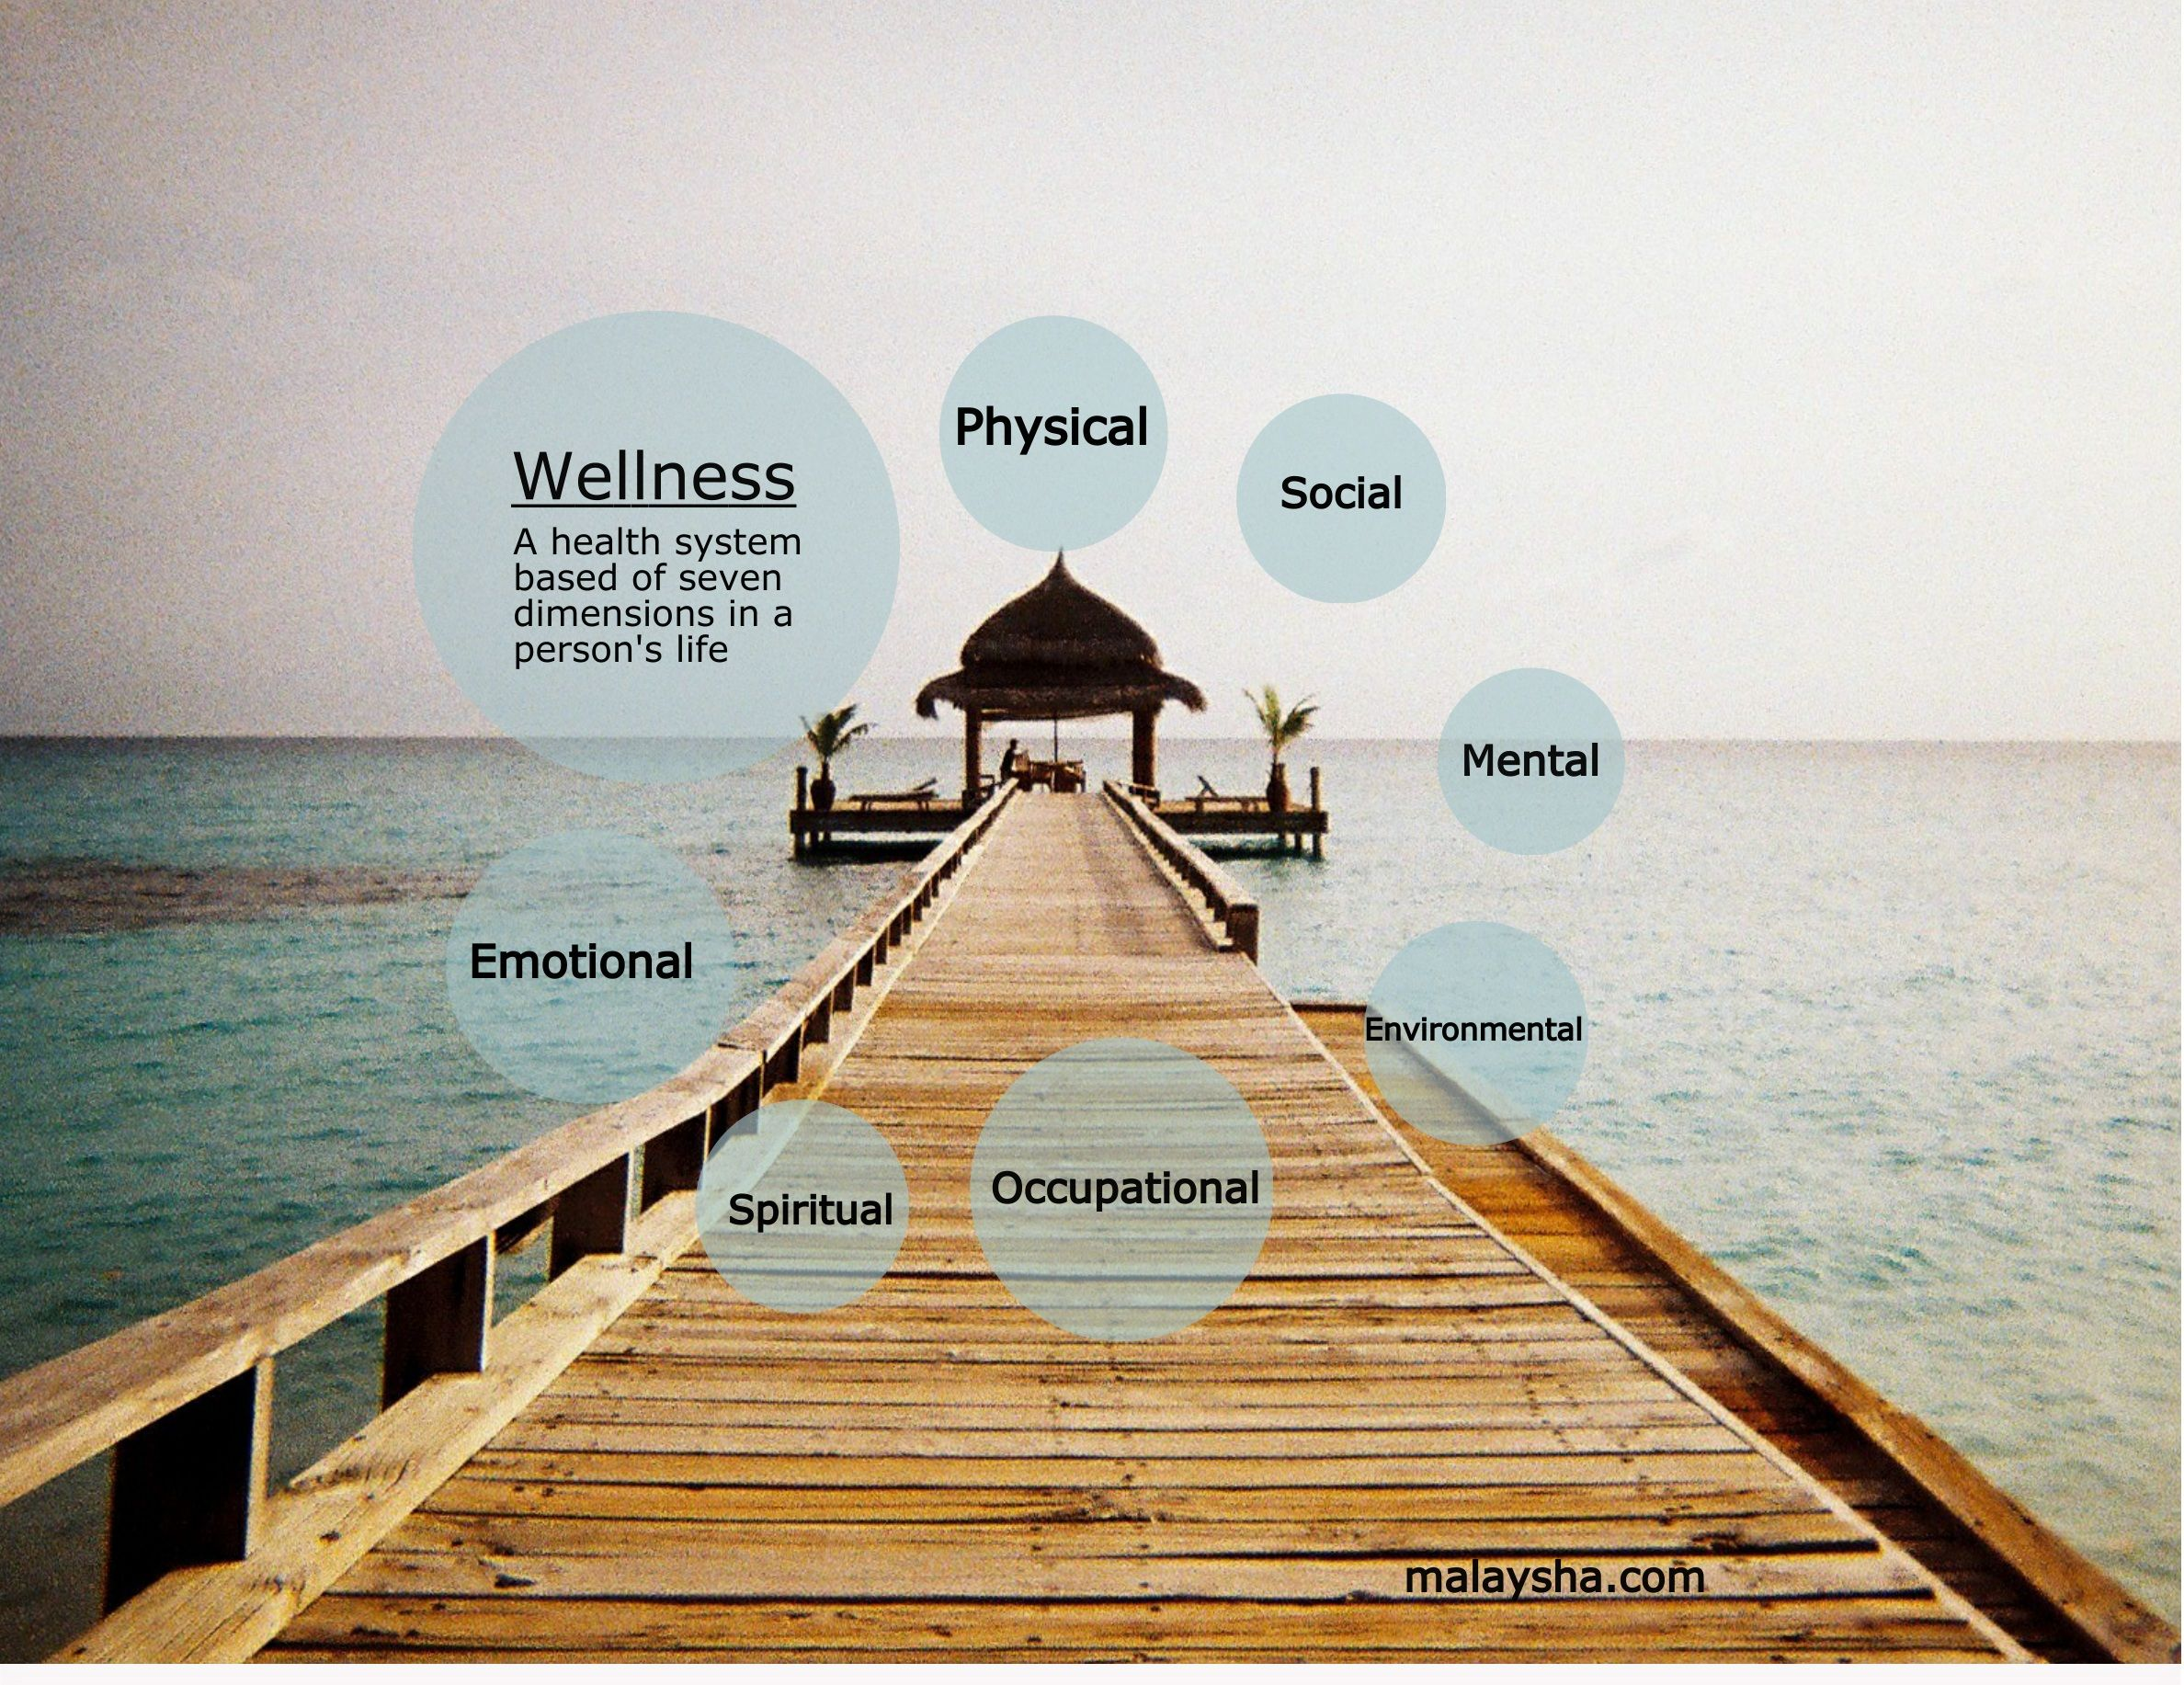 Infographic Depicting The Seven Dimensions Of Wellness